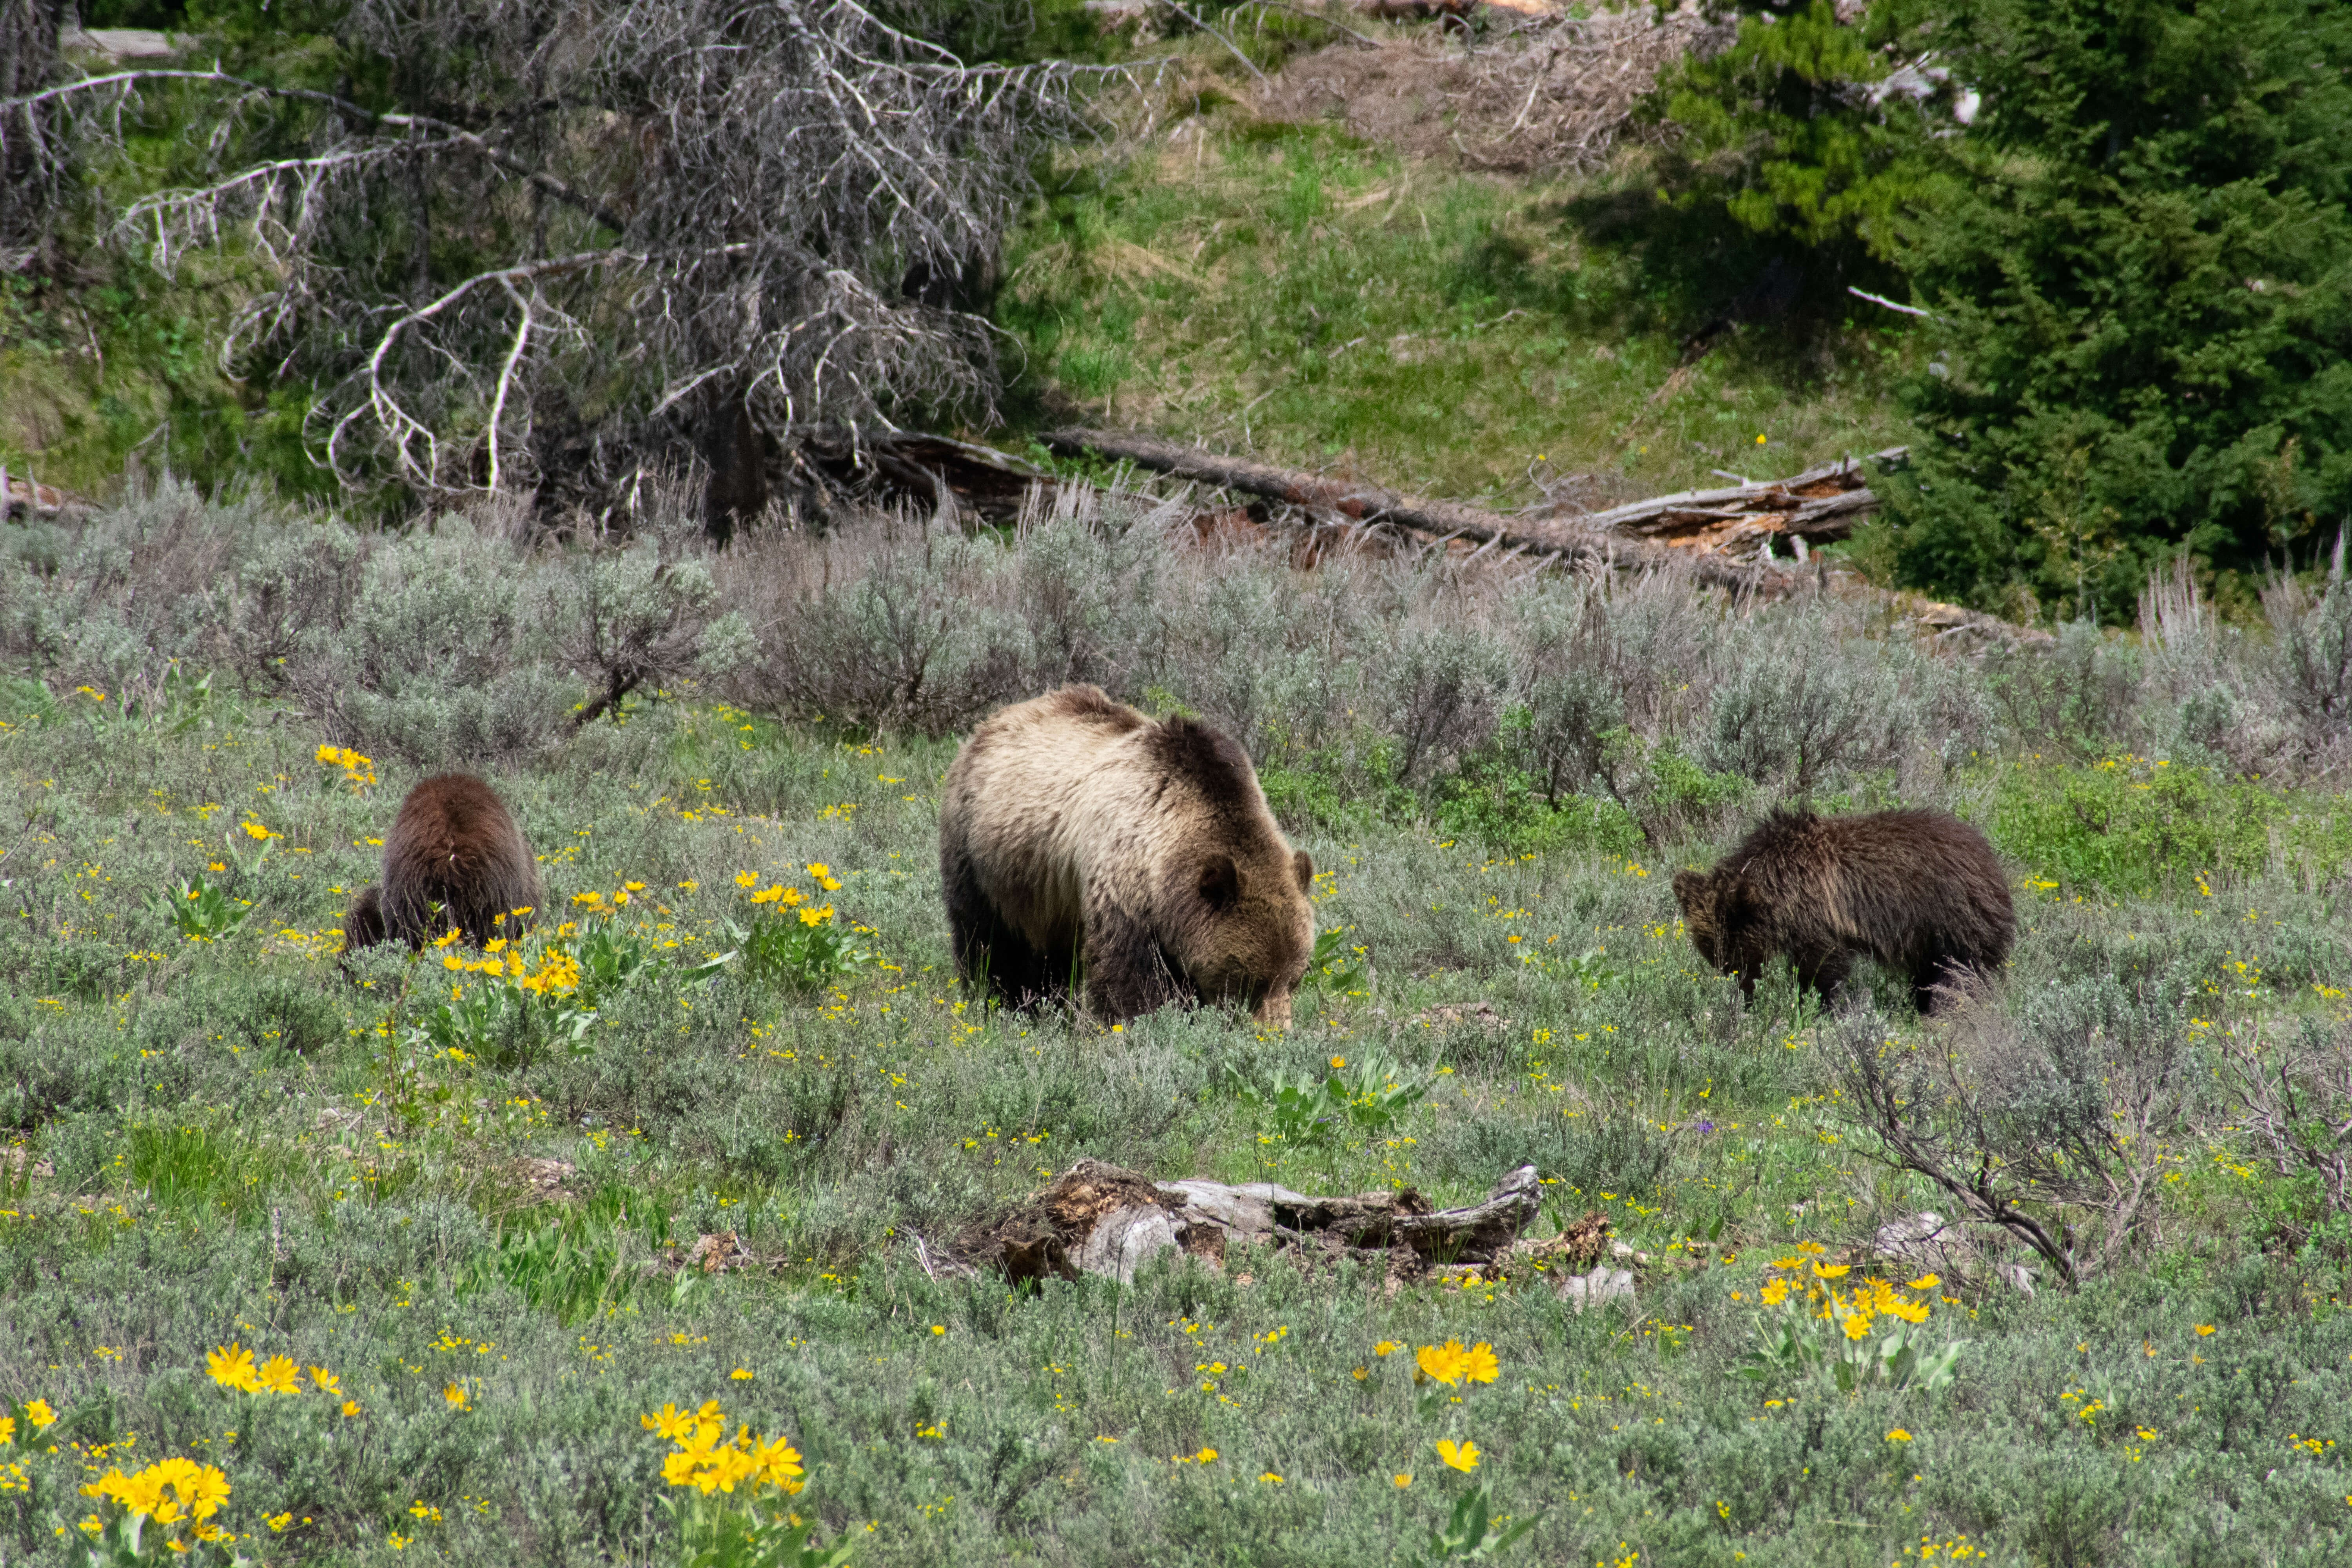 Grizzly Mom and cubs eating in grassy field